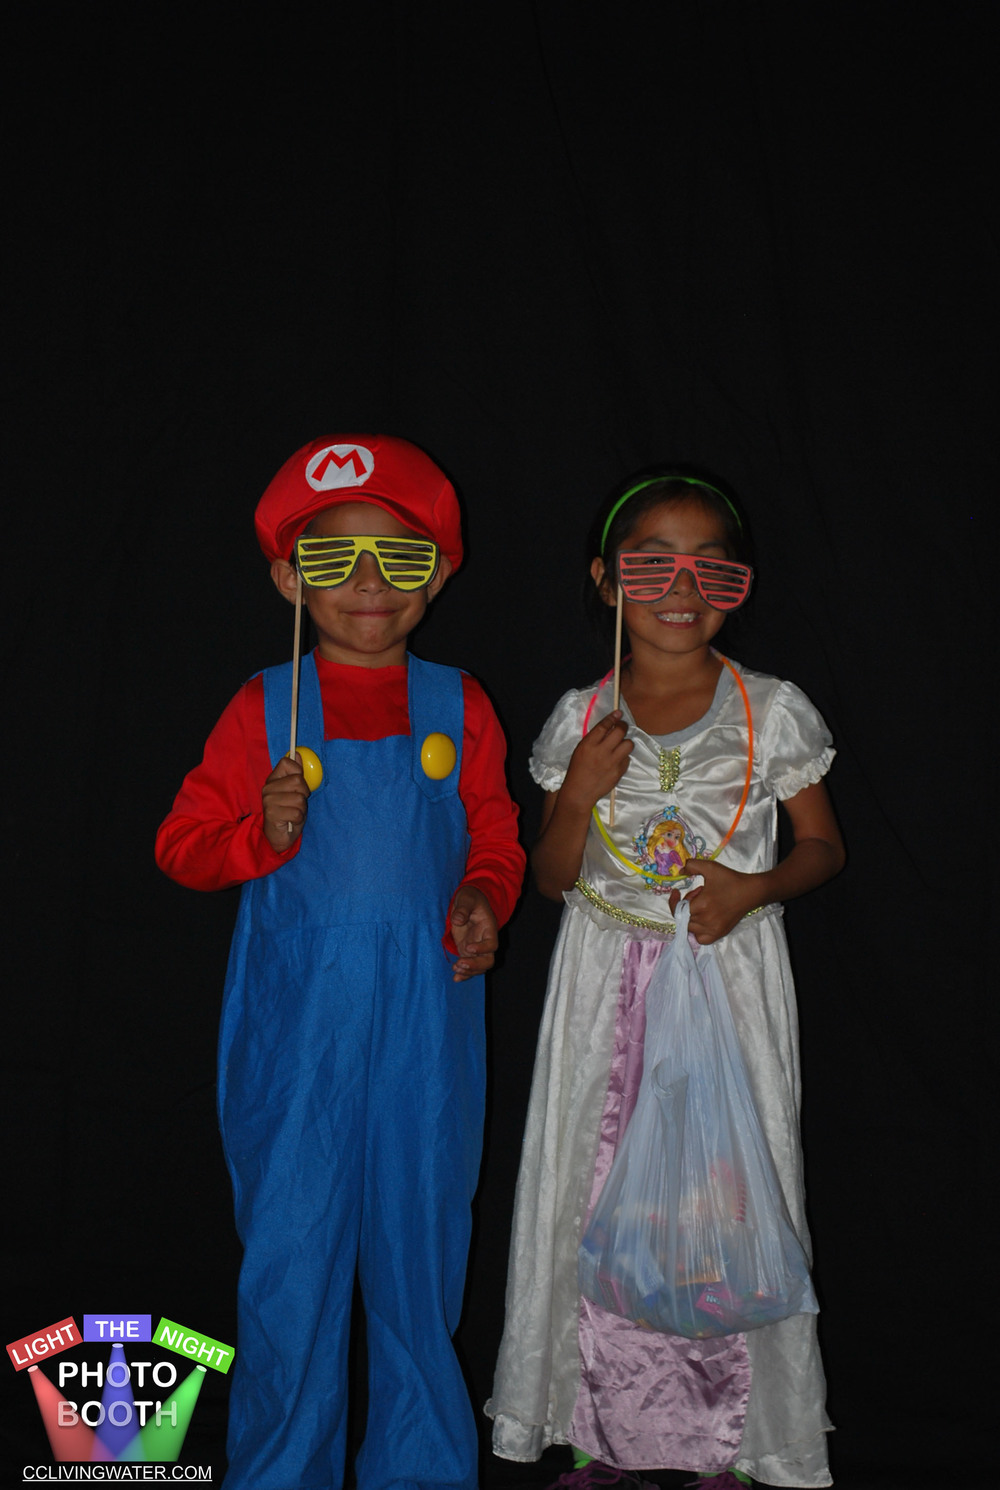 2014-10 - Light The Night Photo Booth (127) copy.jpg